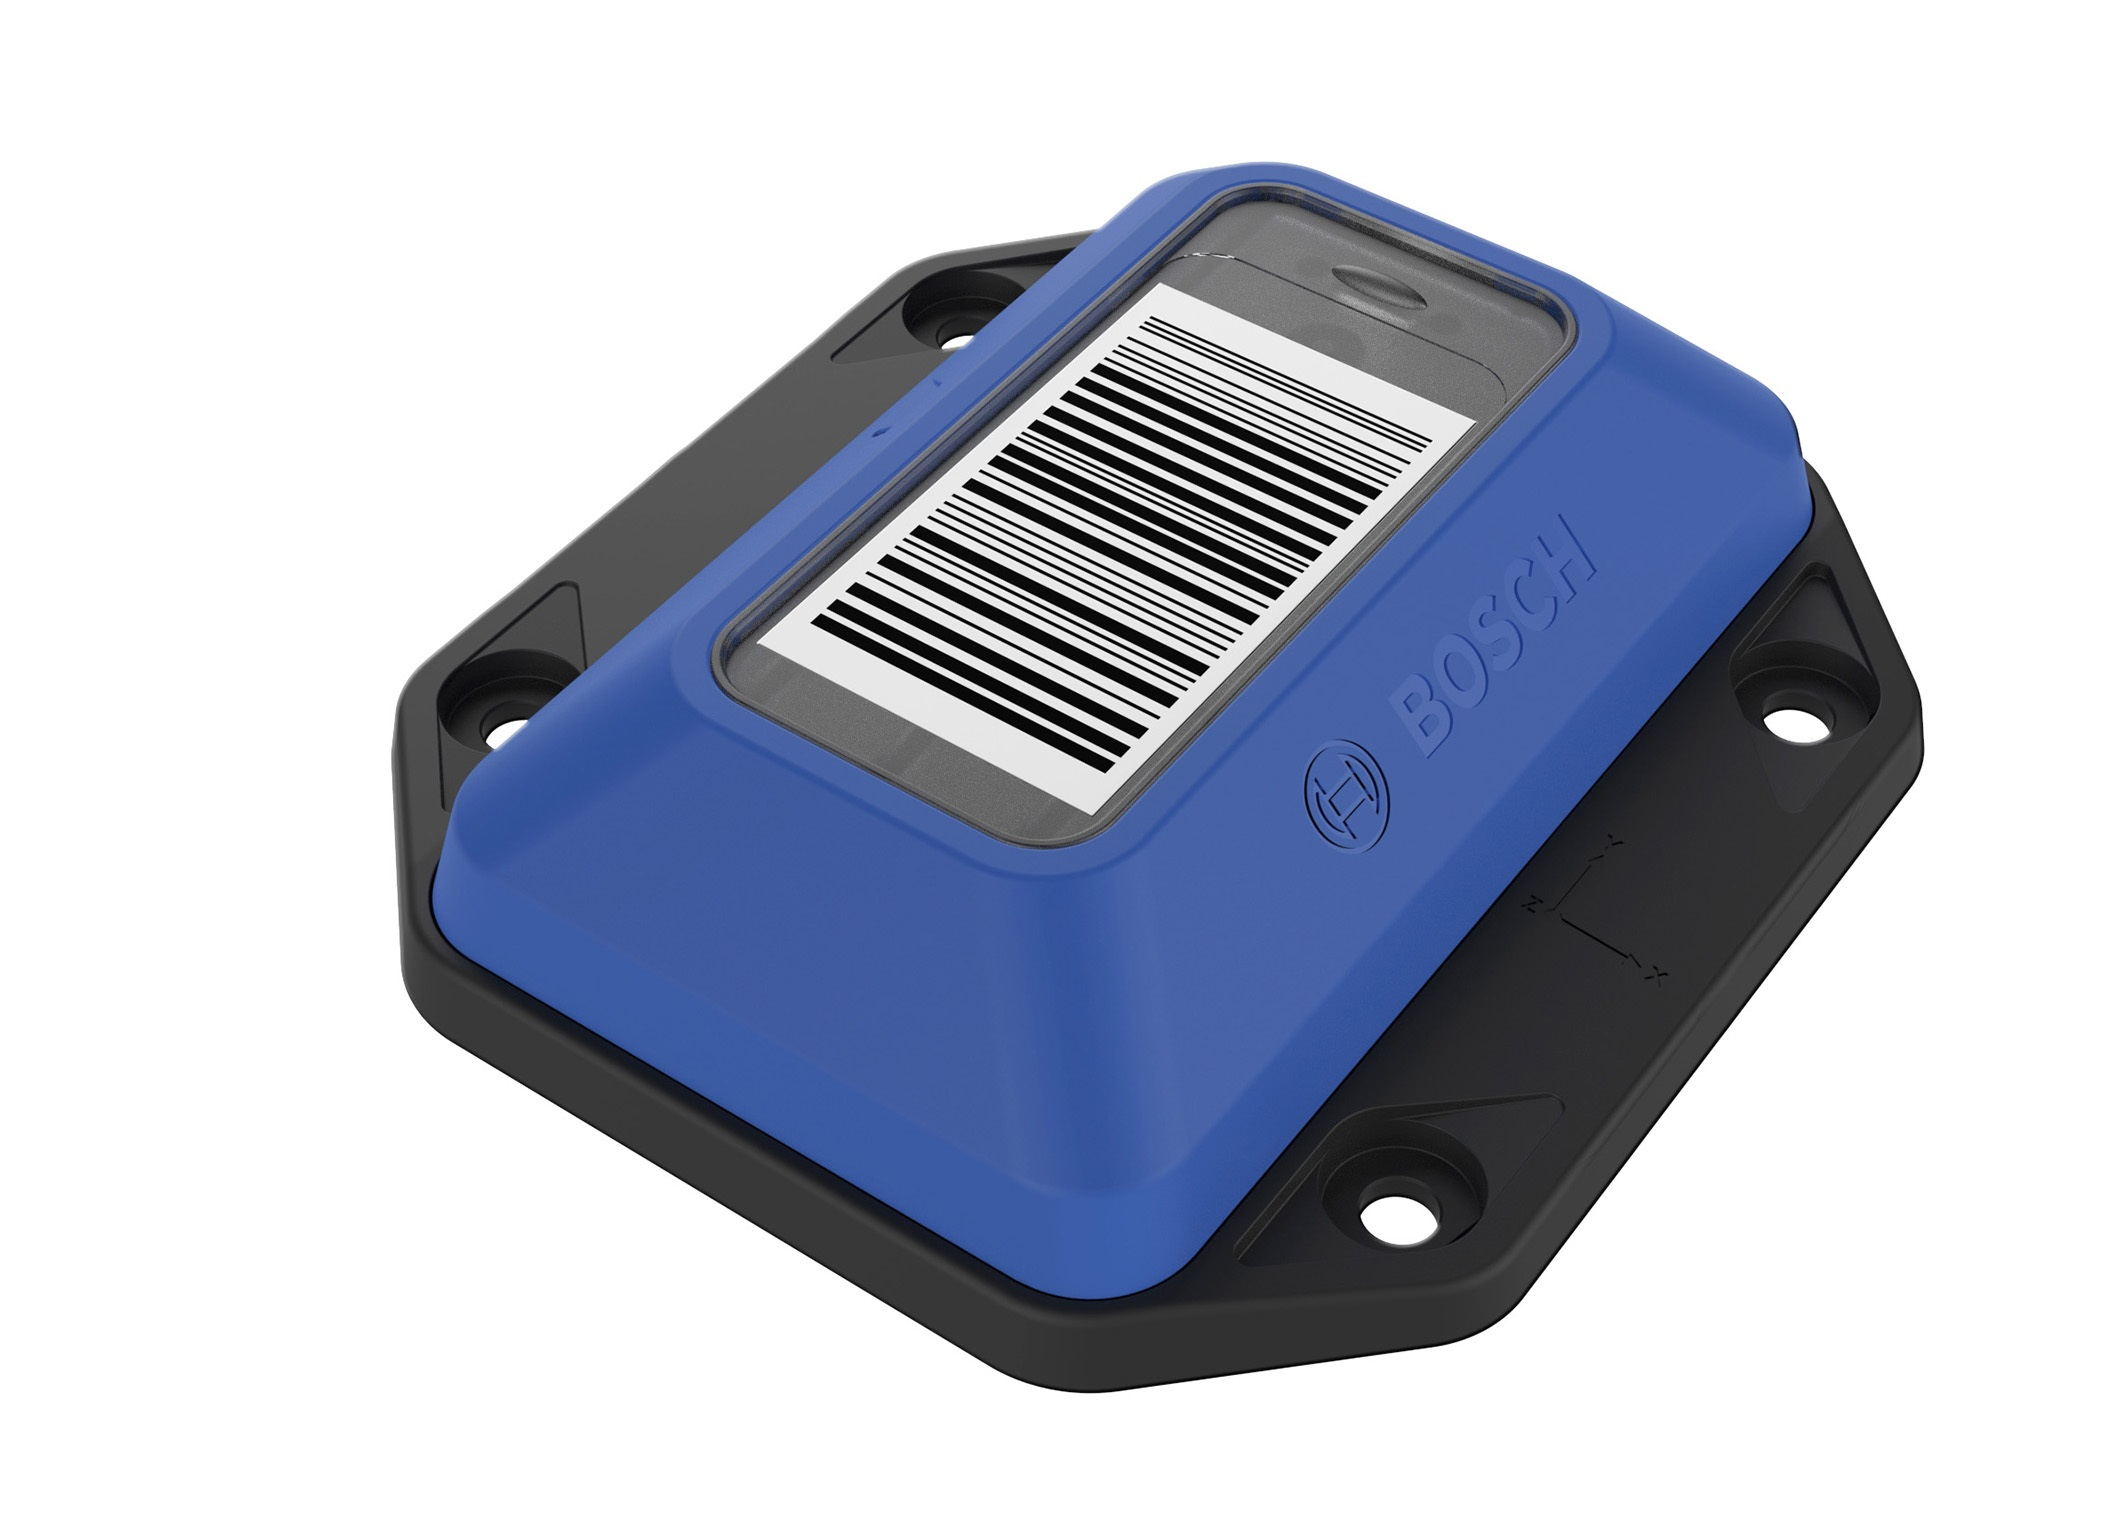 Contra e Bosch Connected Devices and Solutions  presenteranno Transport Data Logger a Gustus